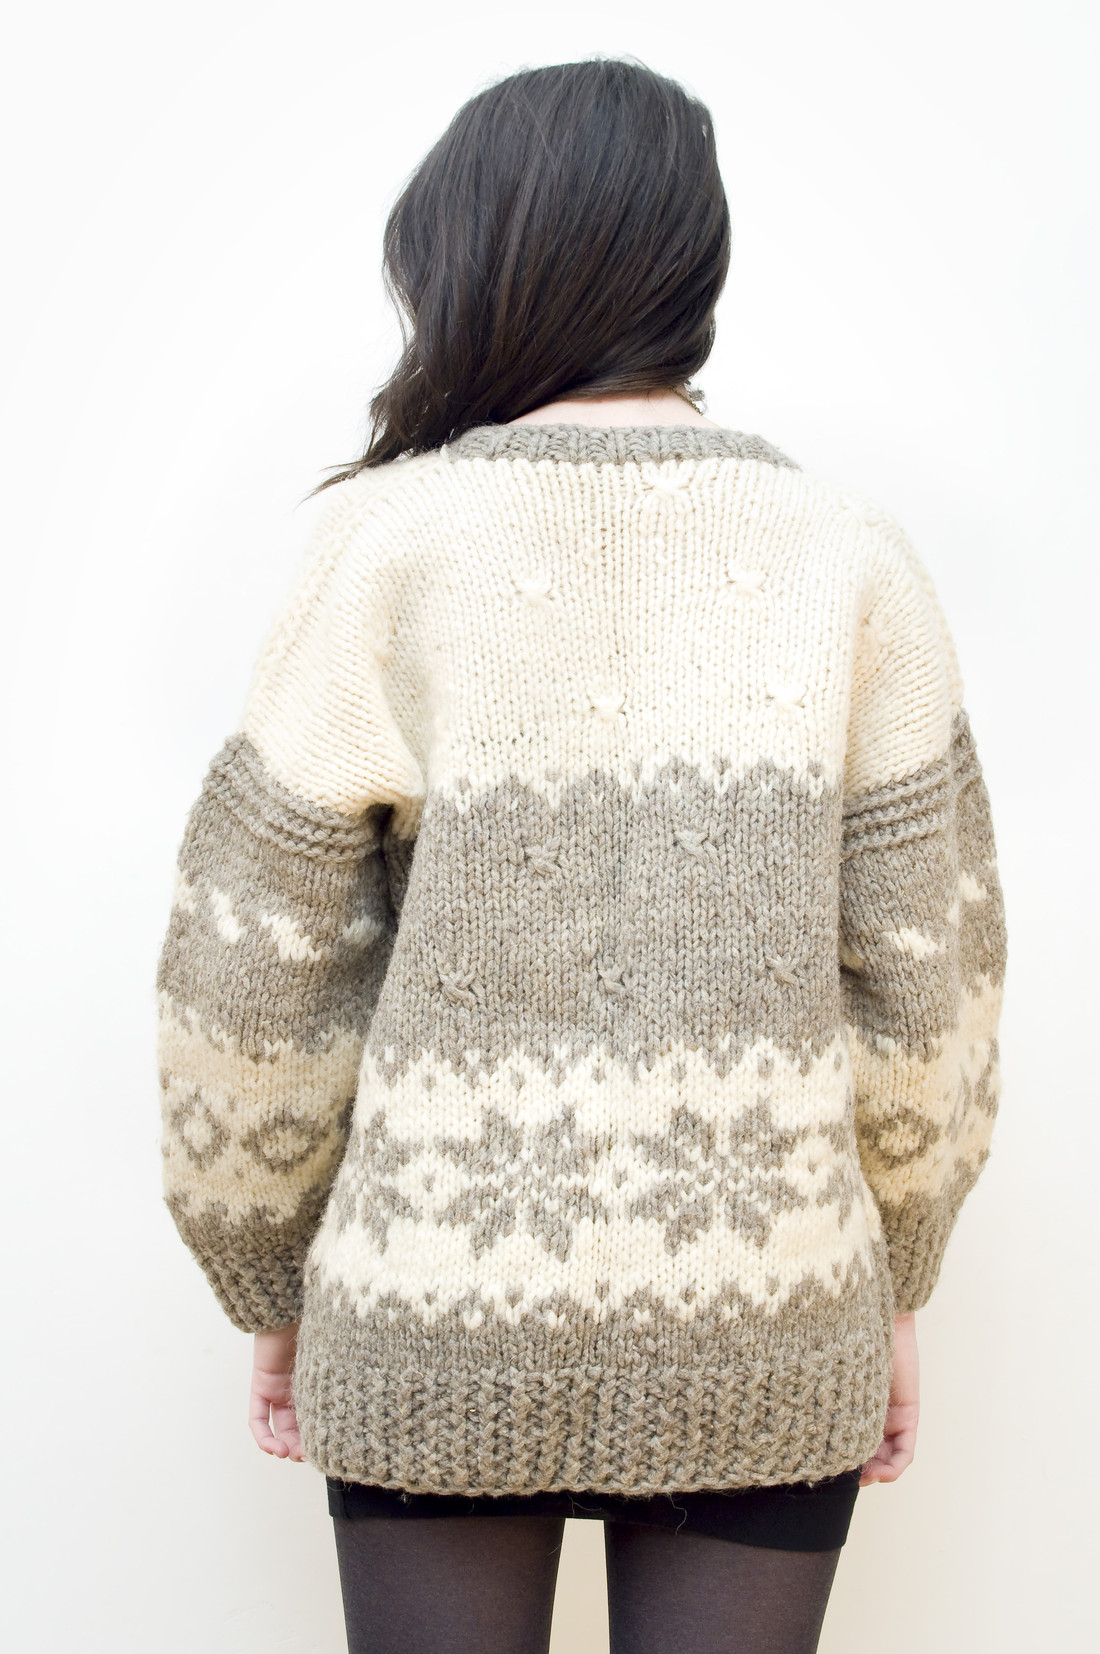 Norwegian patterned sweater - Pop Sick Vintage